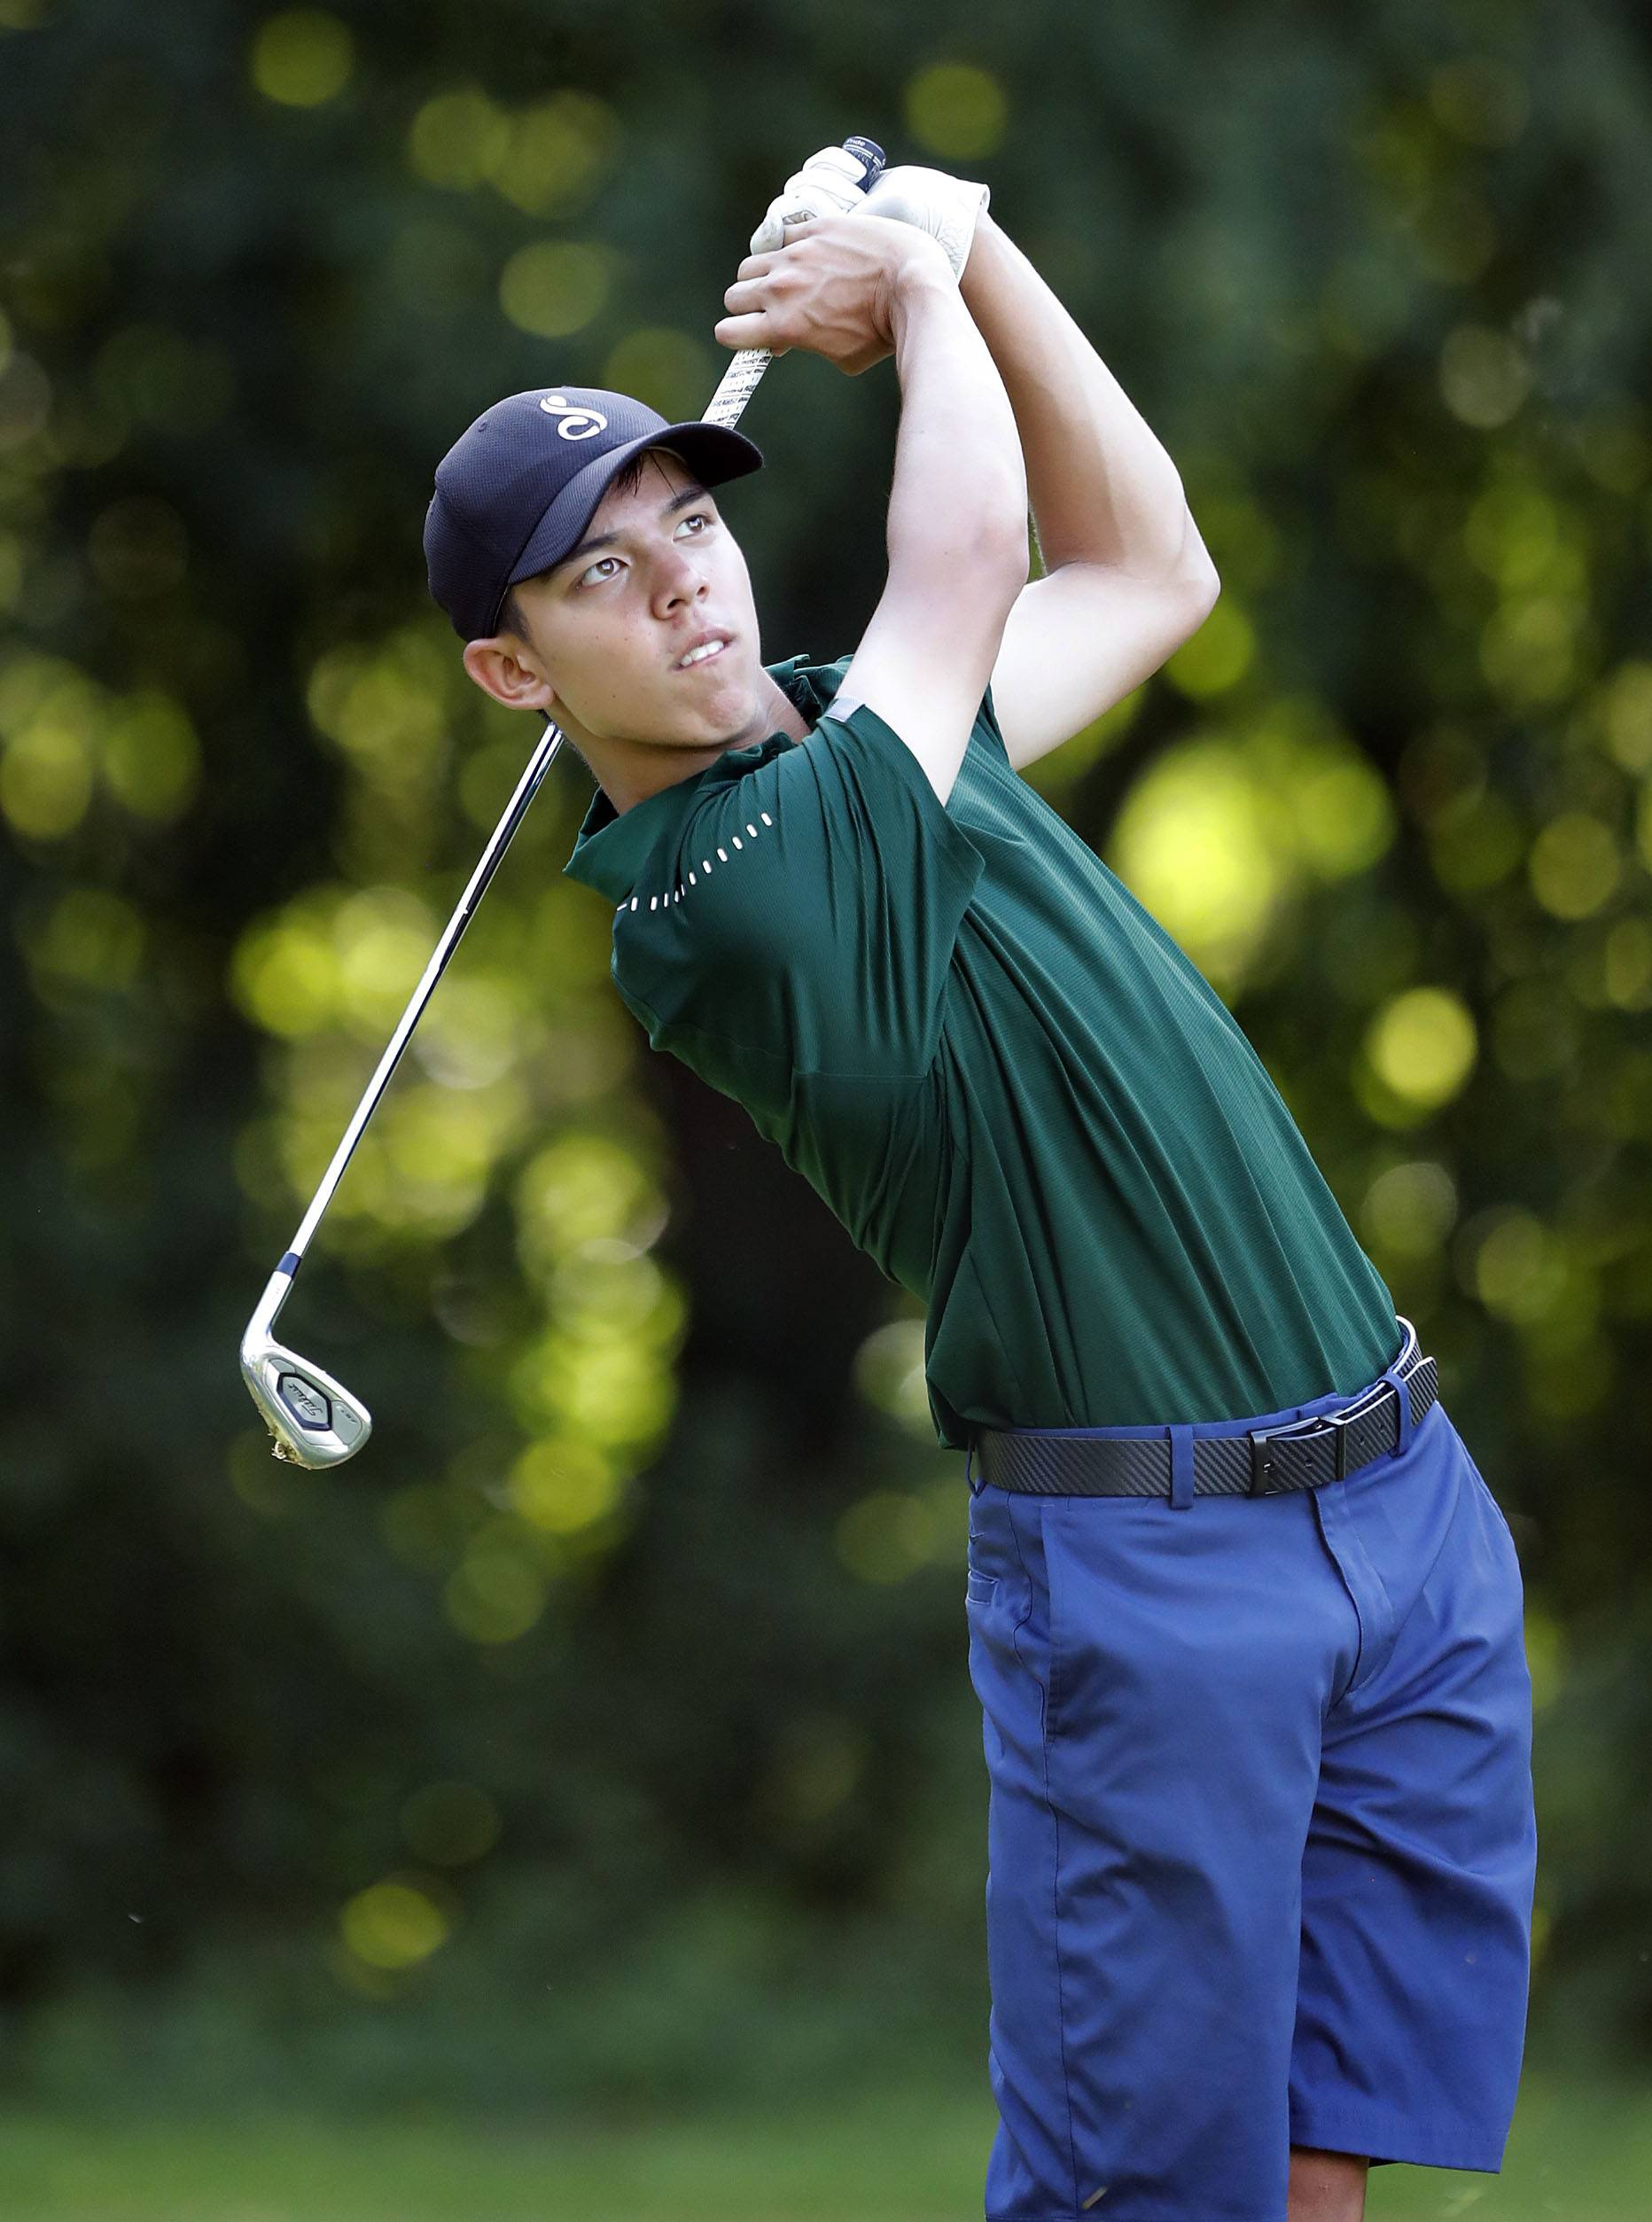 Stevenson's Jackson Bussell tee shot to the 4th hole during their match against Mundelein at Steeple Chase Golf Club Tuesday.